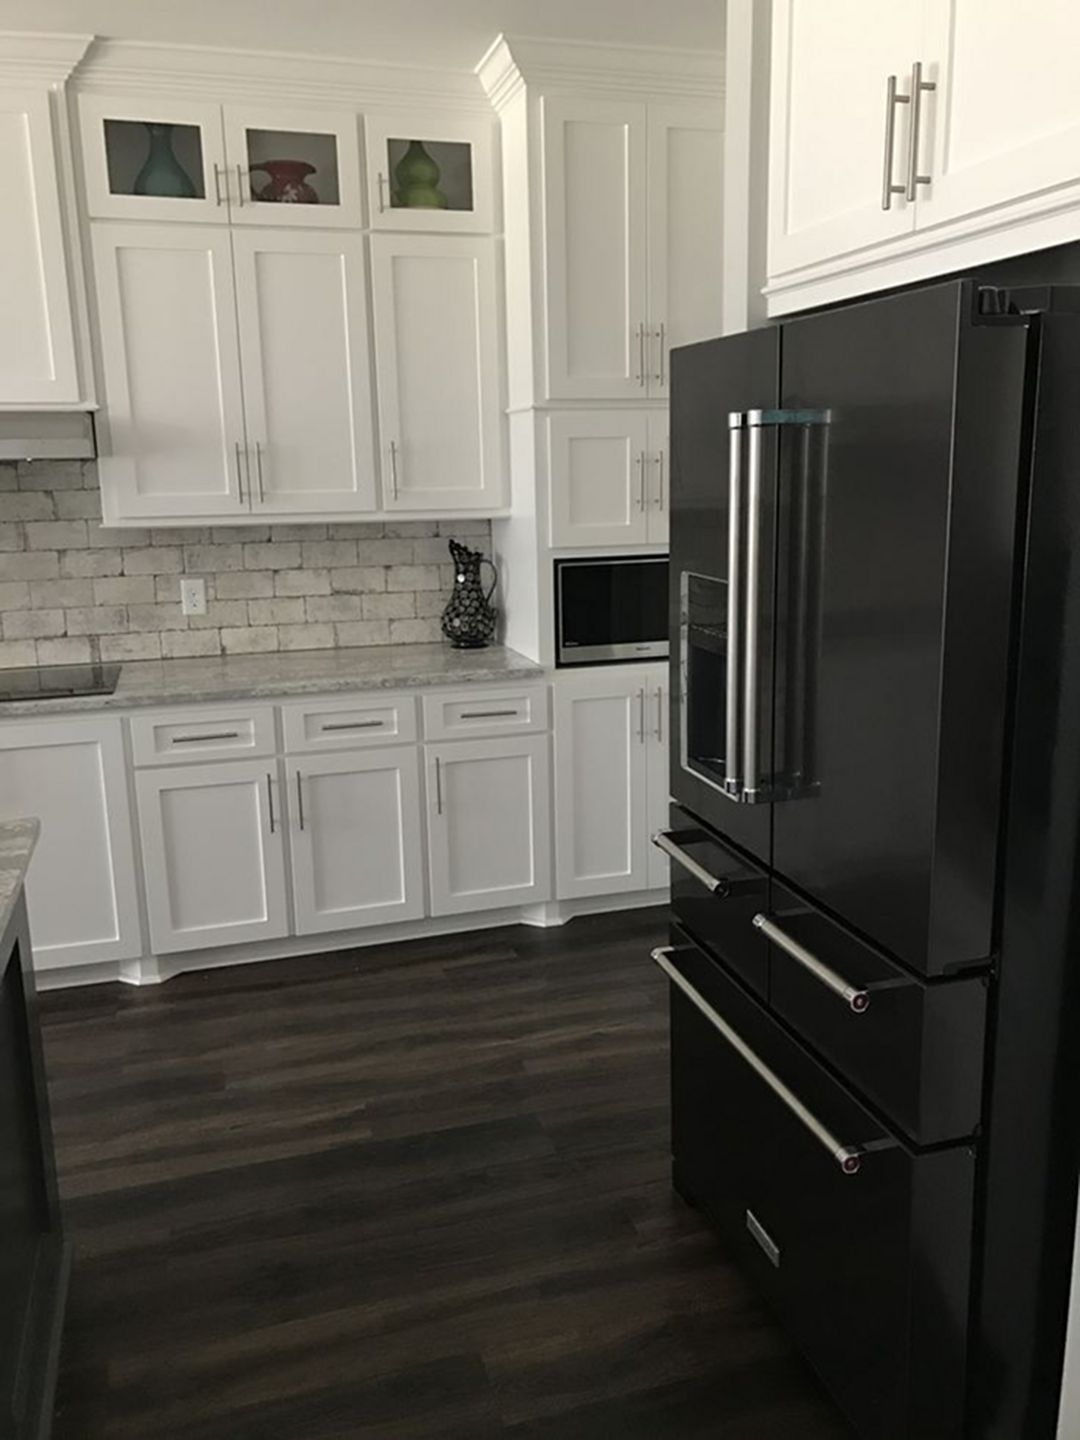 30 elegant black and white kitchen cabinet and appliance ideas rh pinterest com